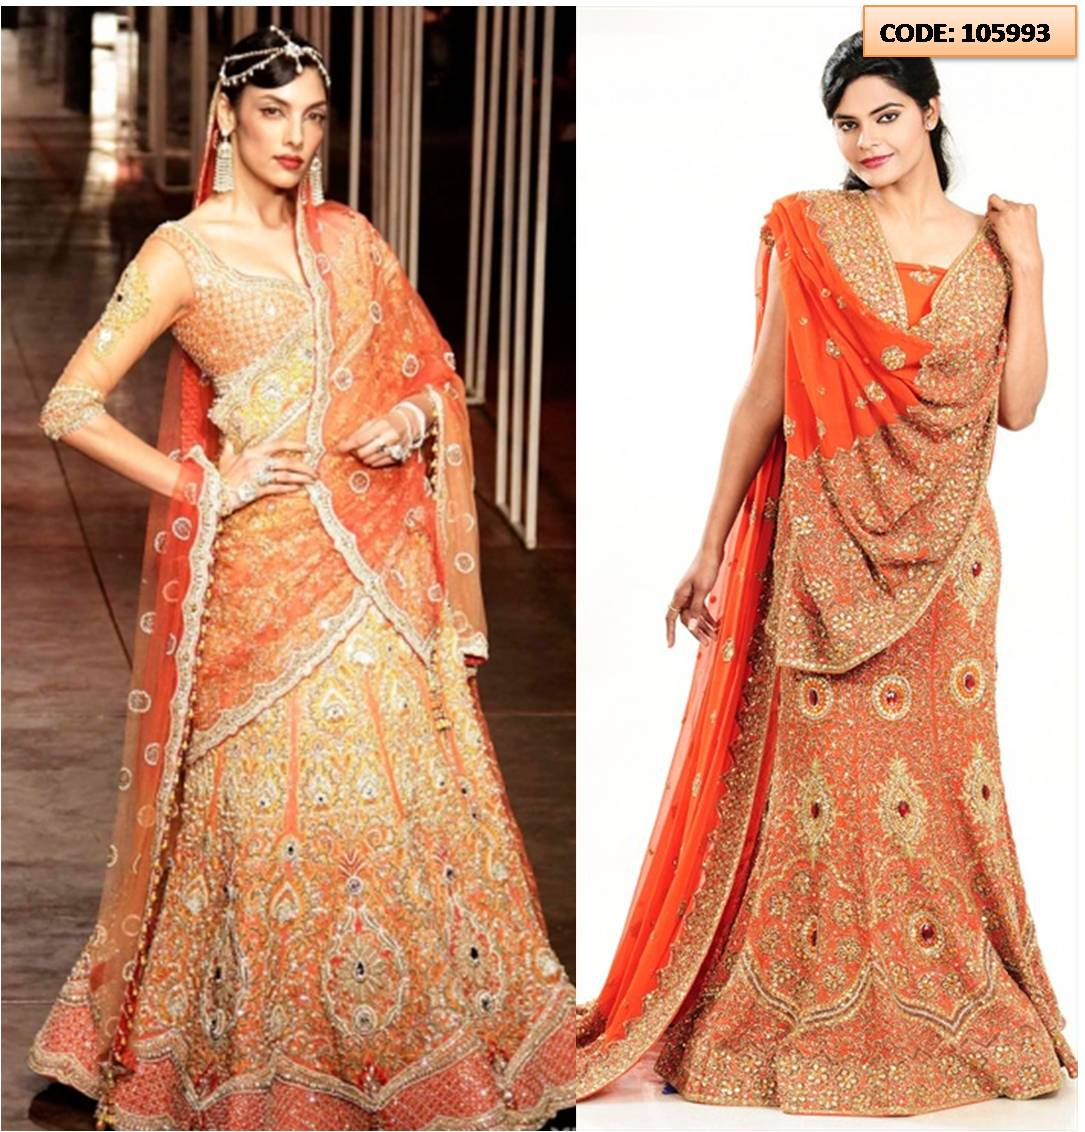 tarun-orange-lhnga 20 Latest Bridal Lehenga Designs and Ideas to try this year